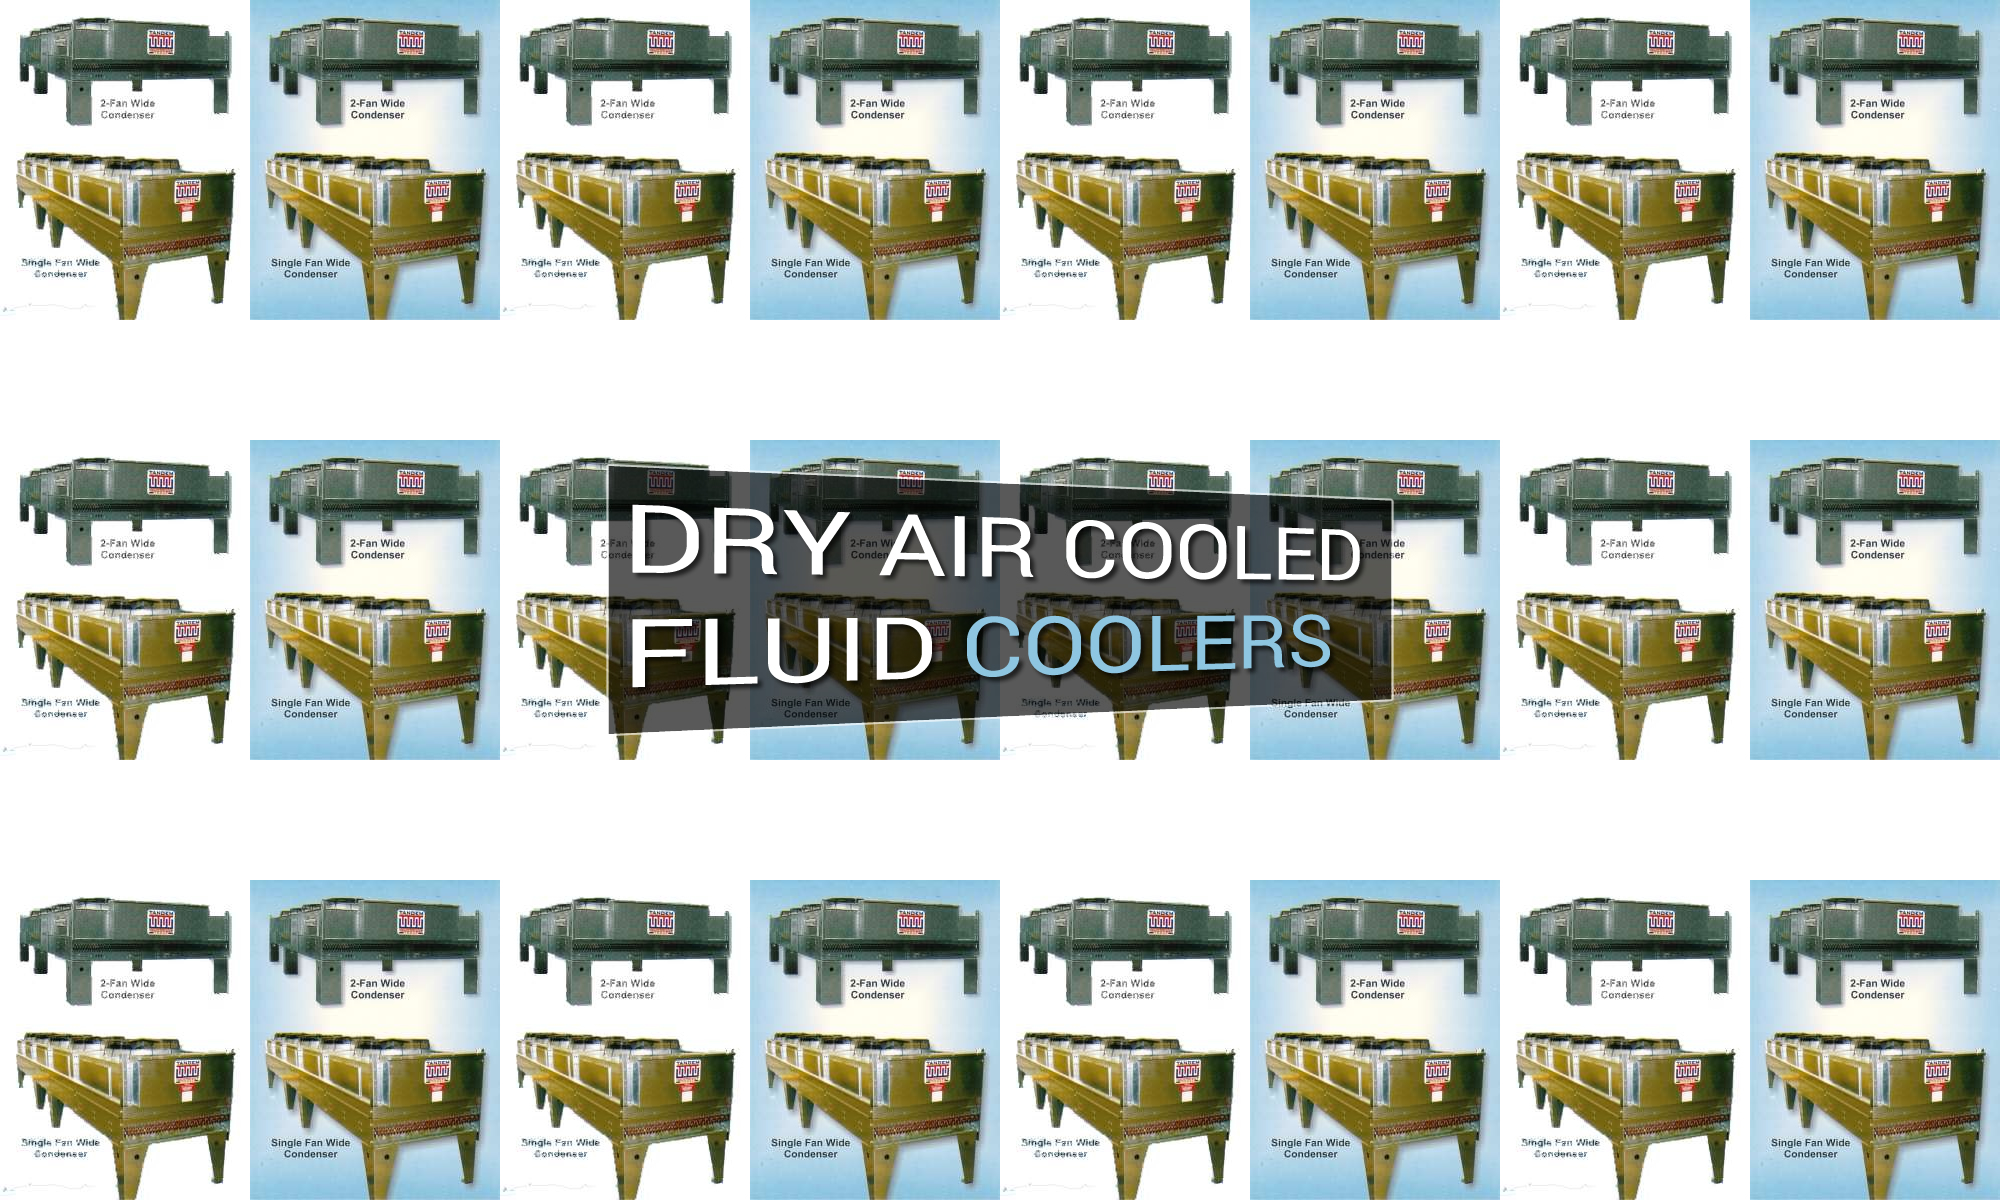 Dry Air Cooled Fluid Coolers